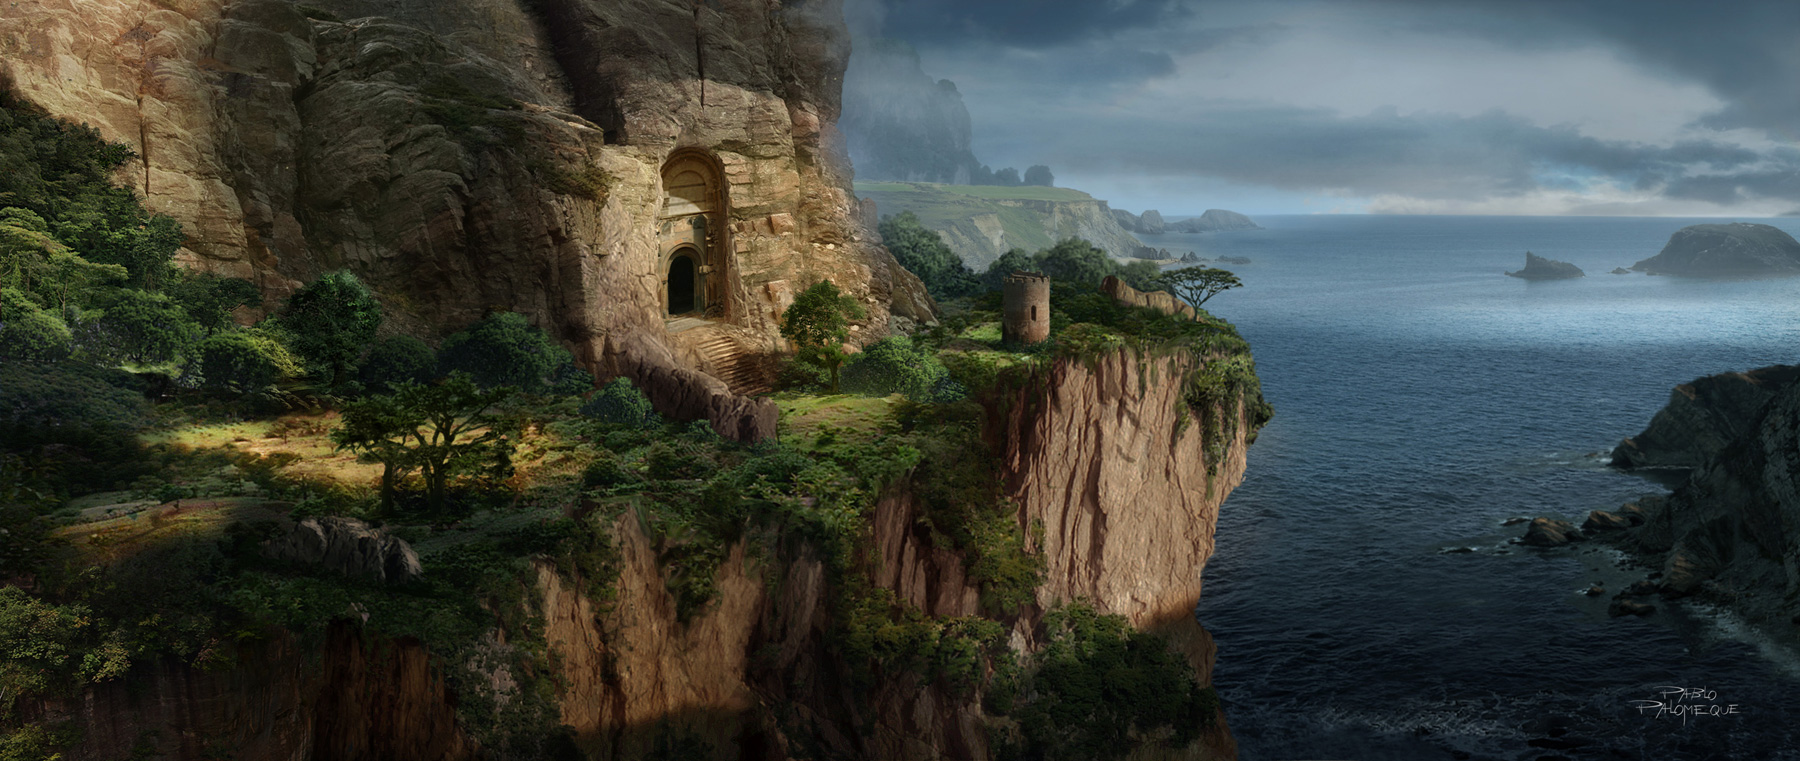 Pablo palomeque concept art world for Matte painting